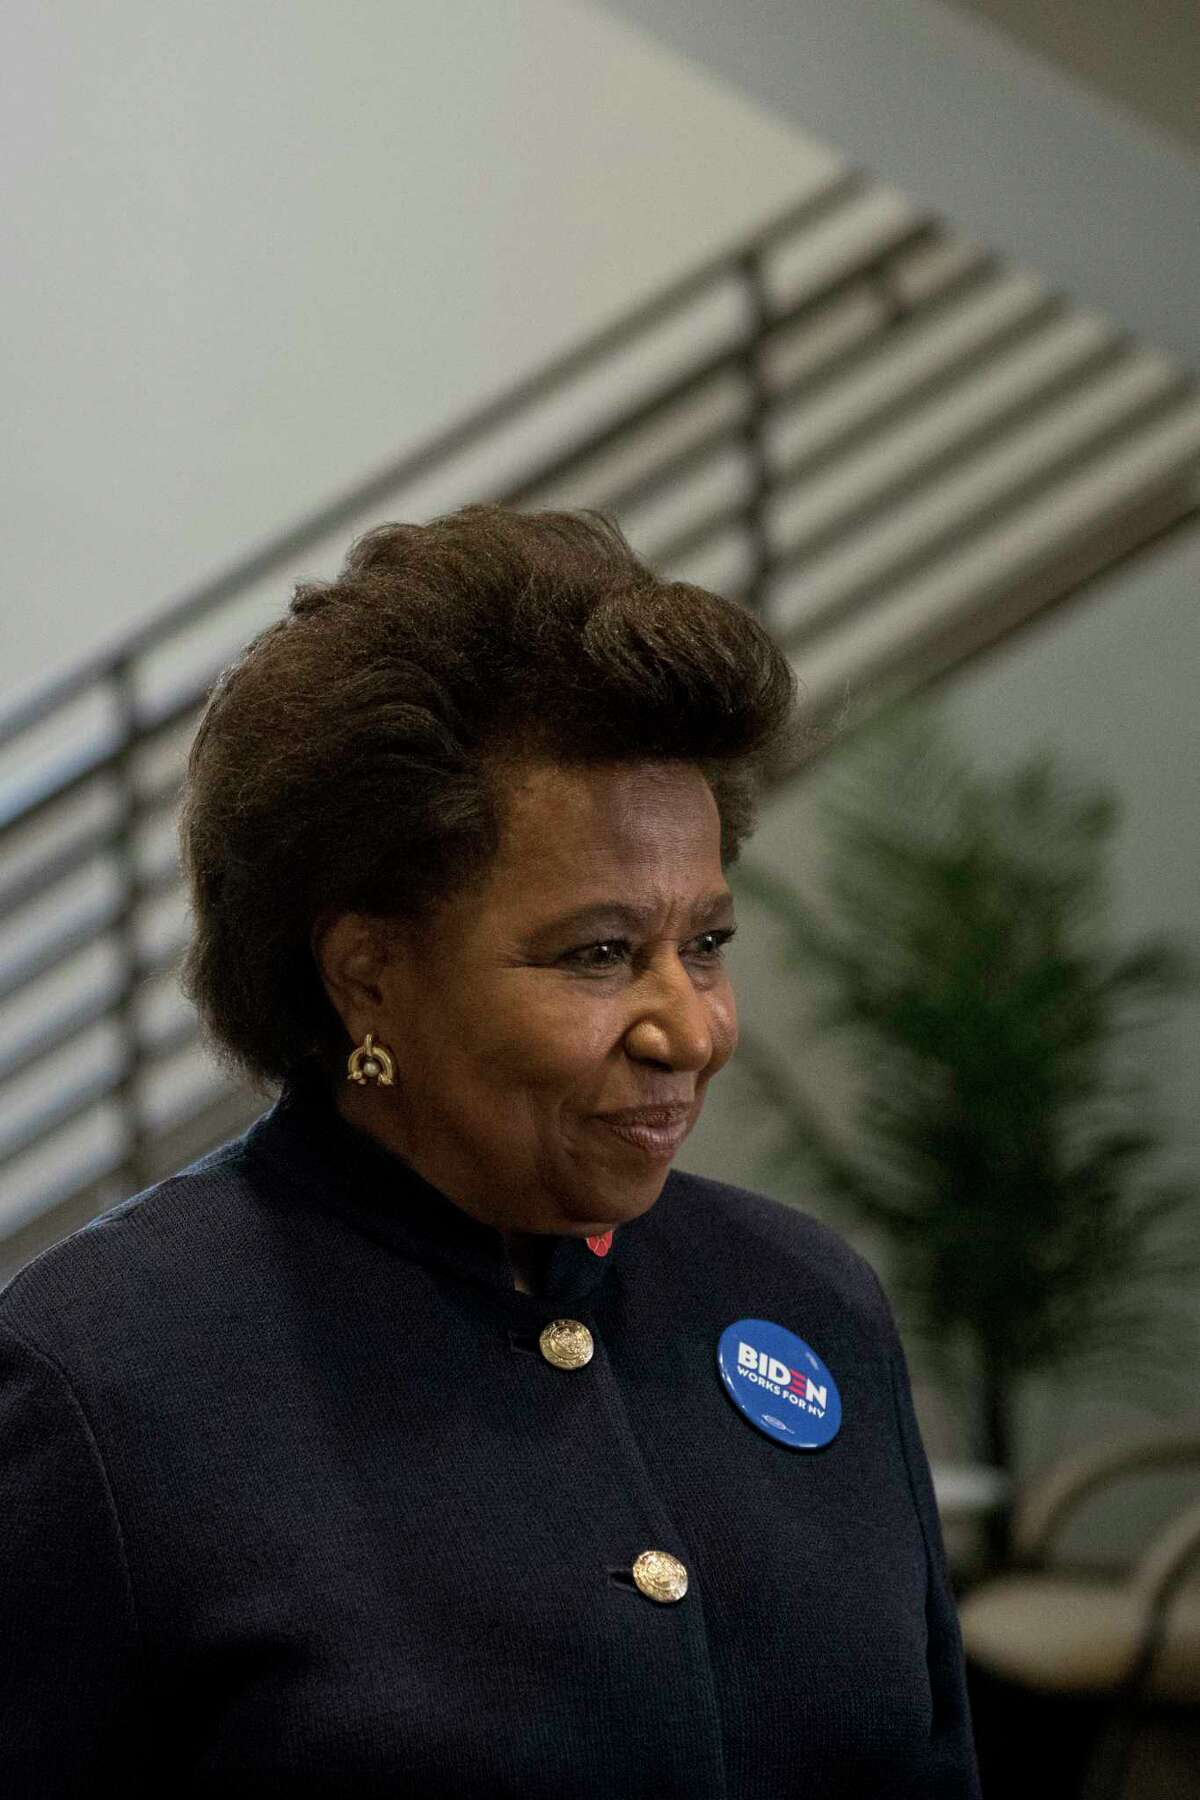 Carol Moseley Braun, a former Democratic U.S. senator from Illinois, departs after meeting with community members while campaigning for Democratic presidential candidate Joe Biden in Las Vegas on Jan. 25.